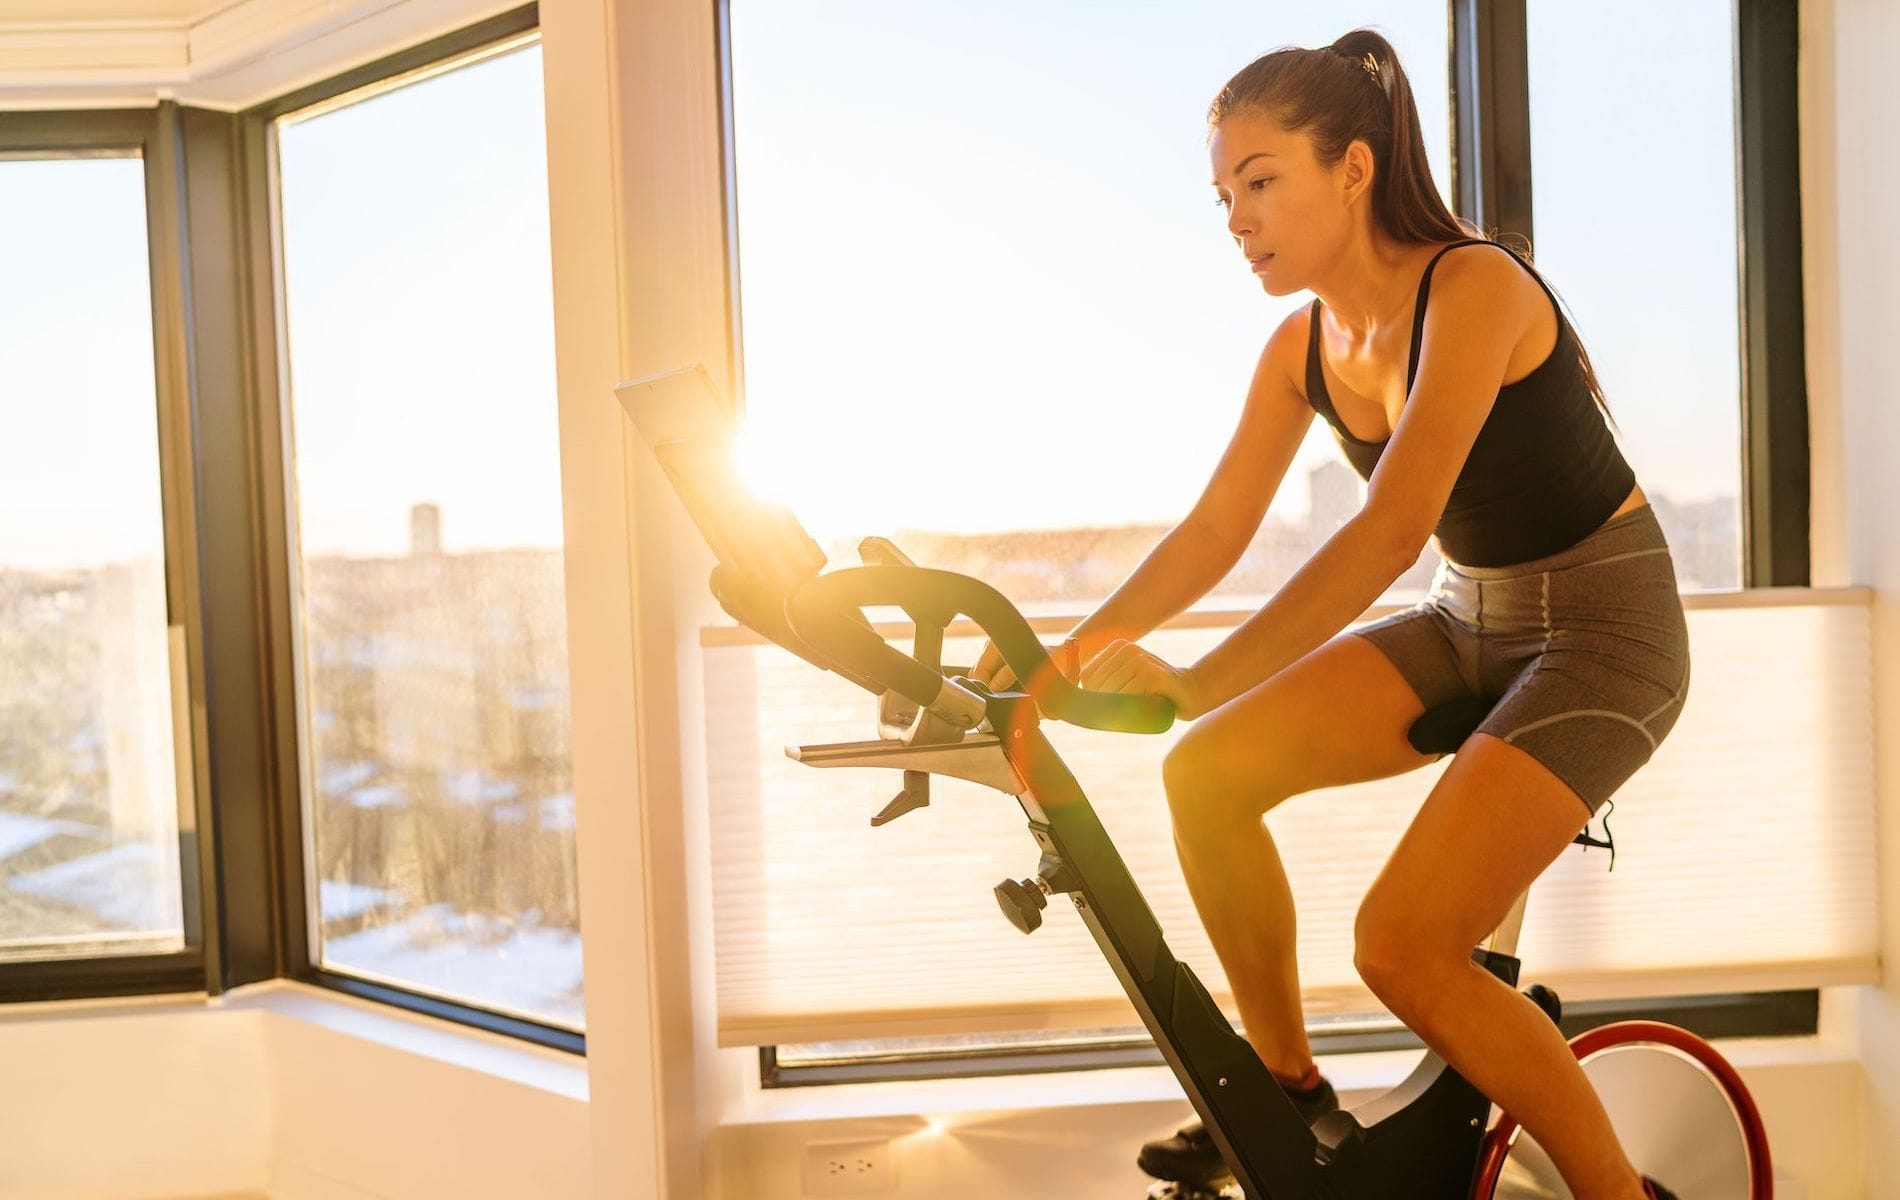 VIE Magazine, 10 Workouts You Can Do at Home, COVID-19